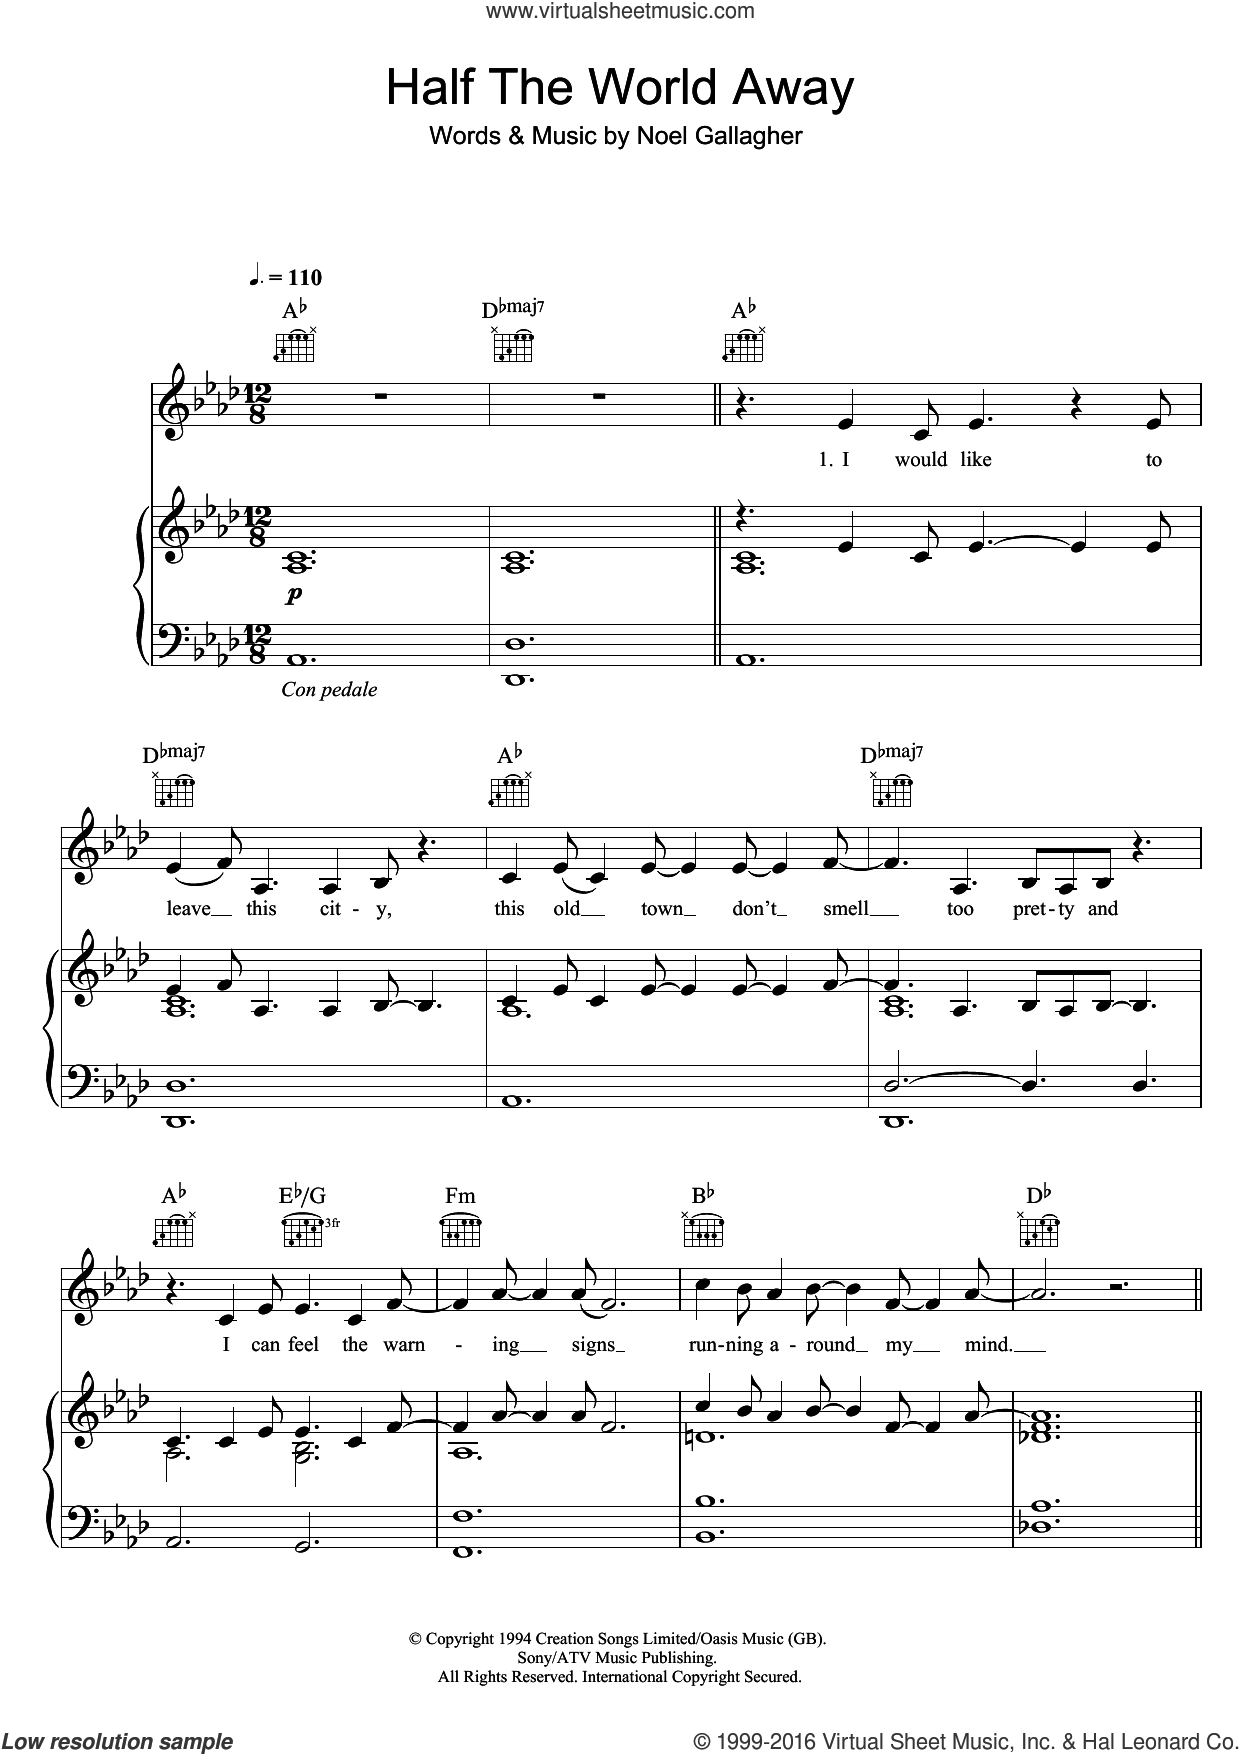 Half The World Away sheet music for voice, piano or guitar by Aurora, Oasis and Noel Gallagher, intermediate skill level